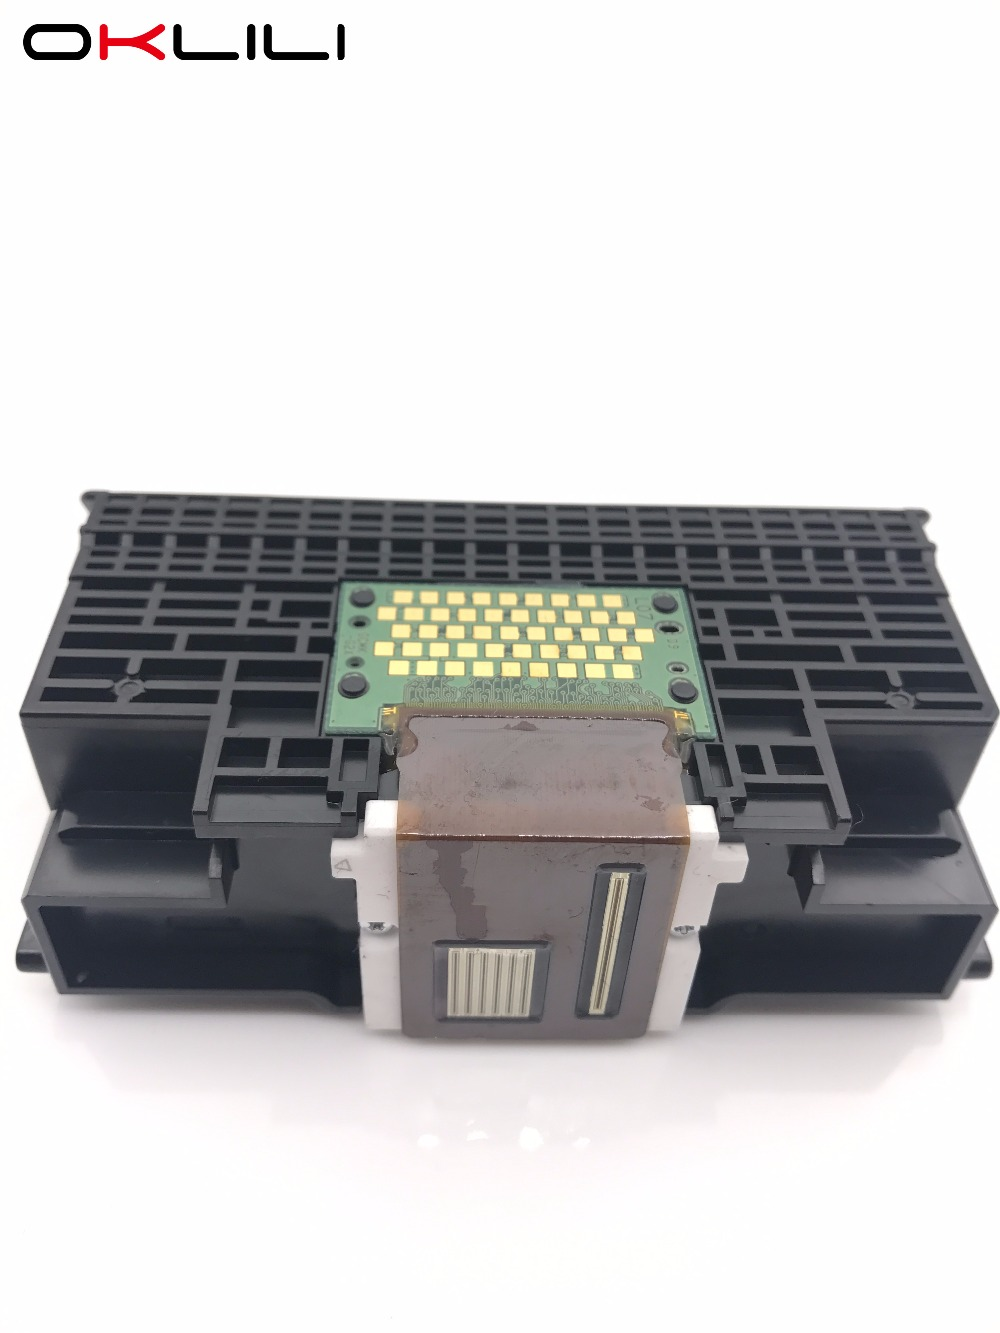 OKLILI ORIGINAL QY6-0062 QY6-0062-000 Printhead Print Head Printer Head for Canon iP7500 iP7600 MP950 MP960 MP970 japan new qy6 0061 qy6 0061 000 printhead print head printer for canon ip4300 ip5200 ip5200r mp600 mp600r mp800 mp800r mp830